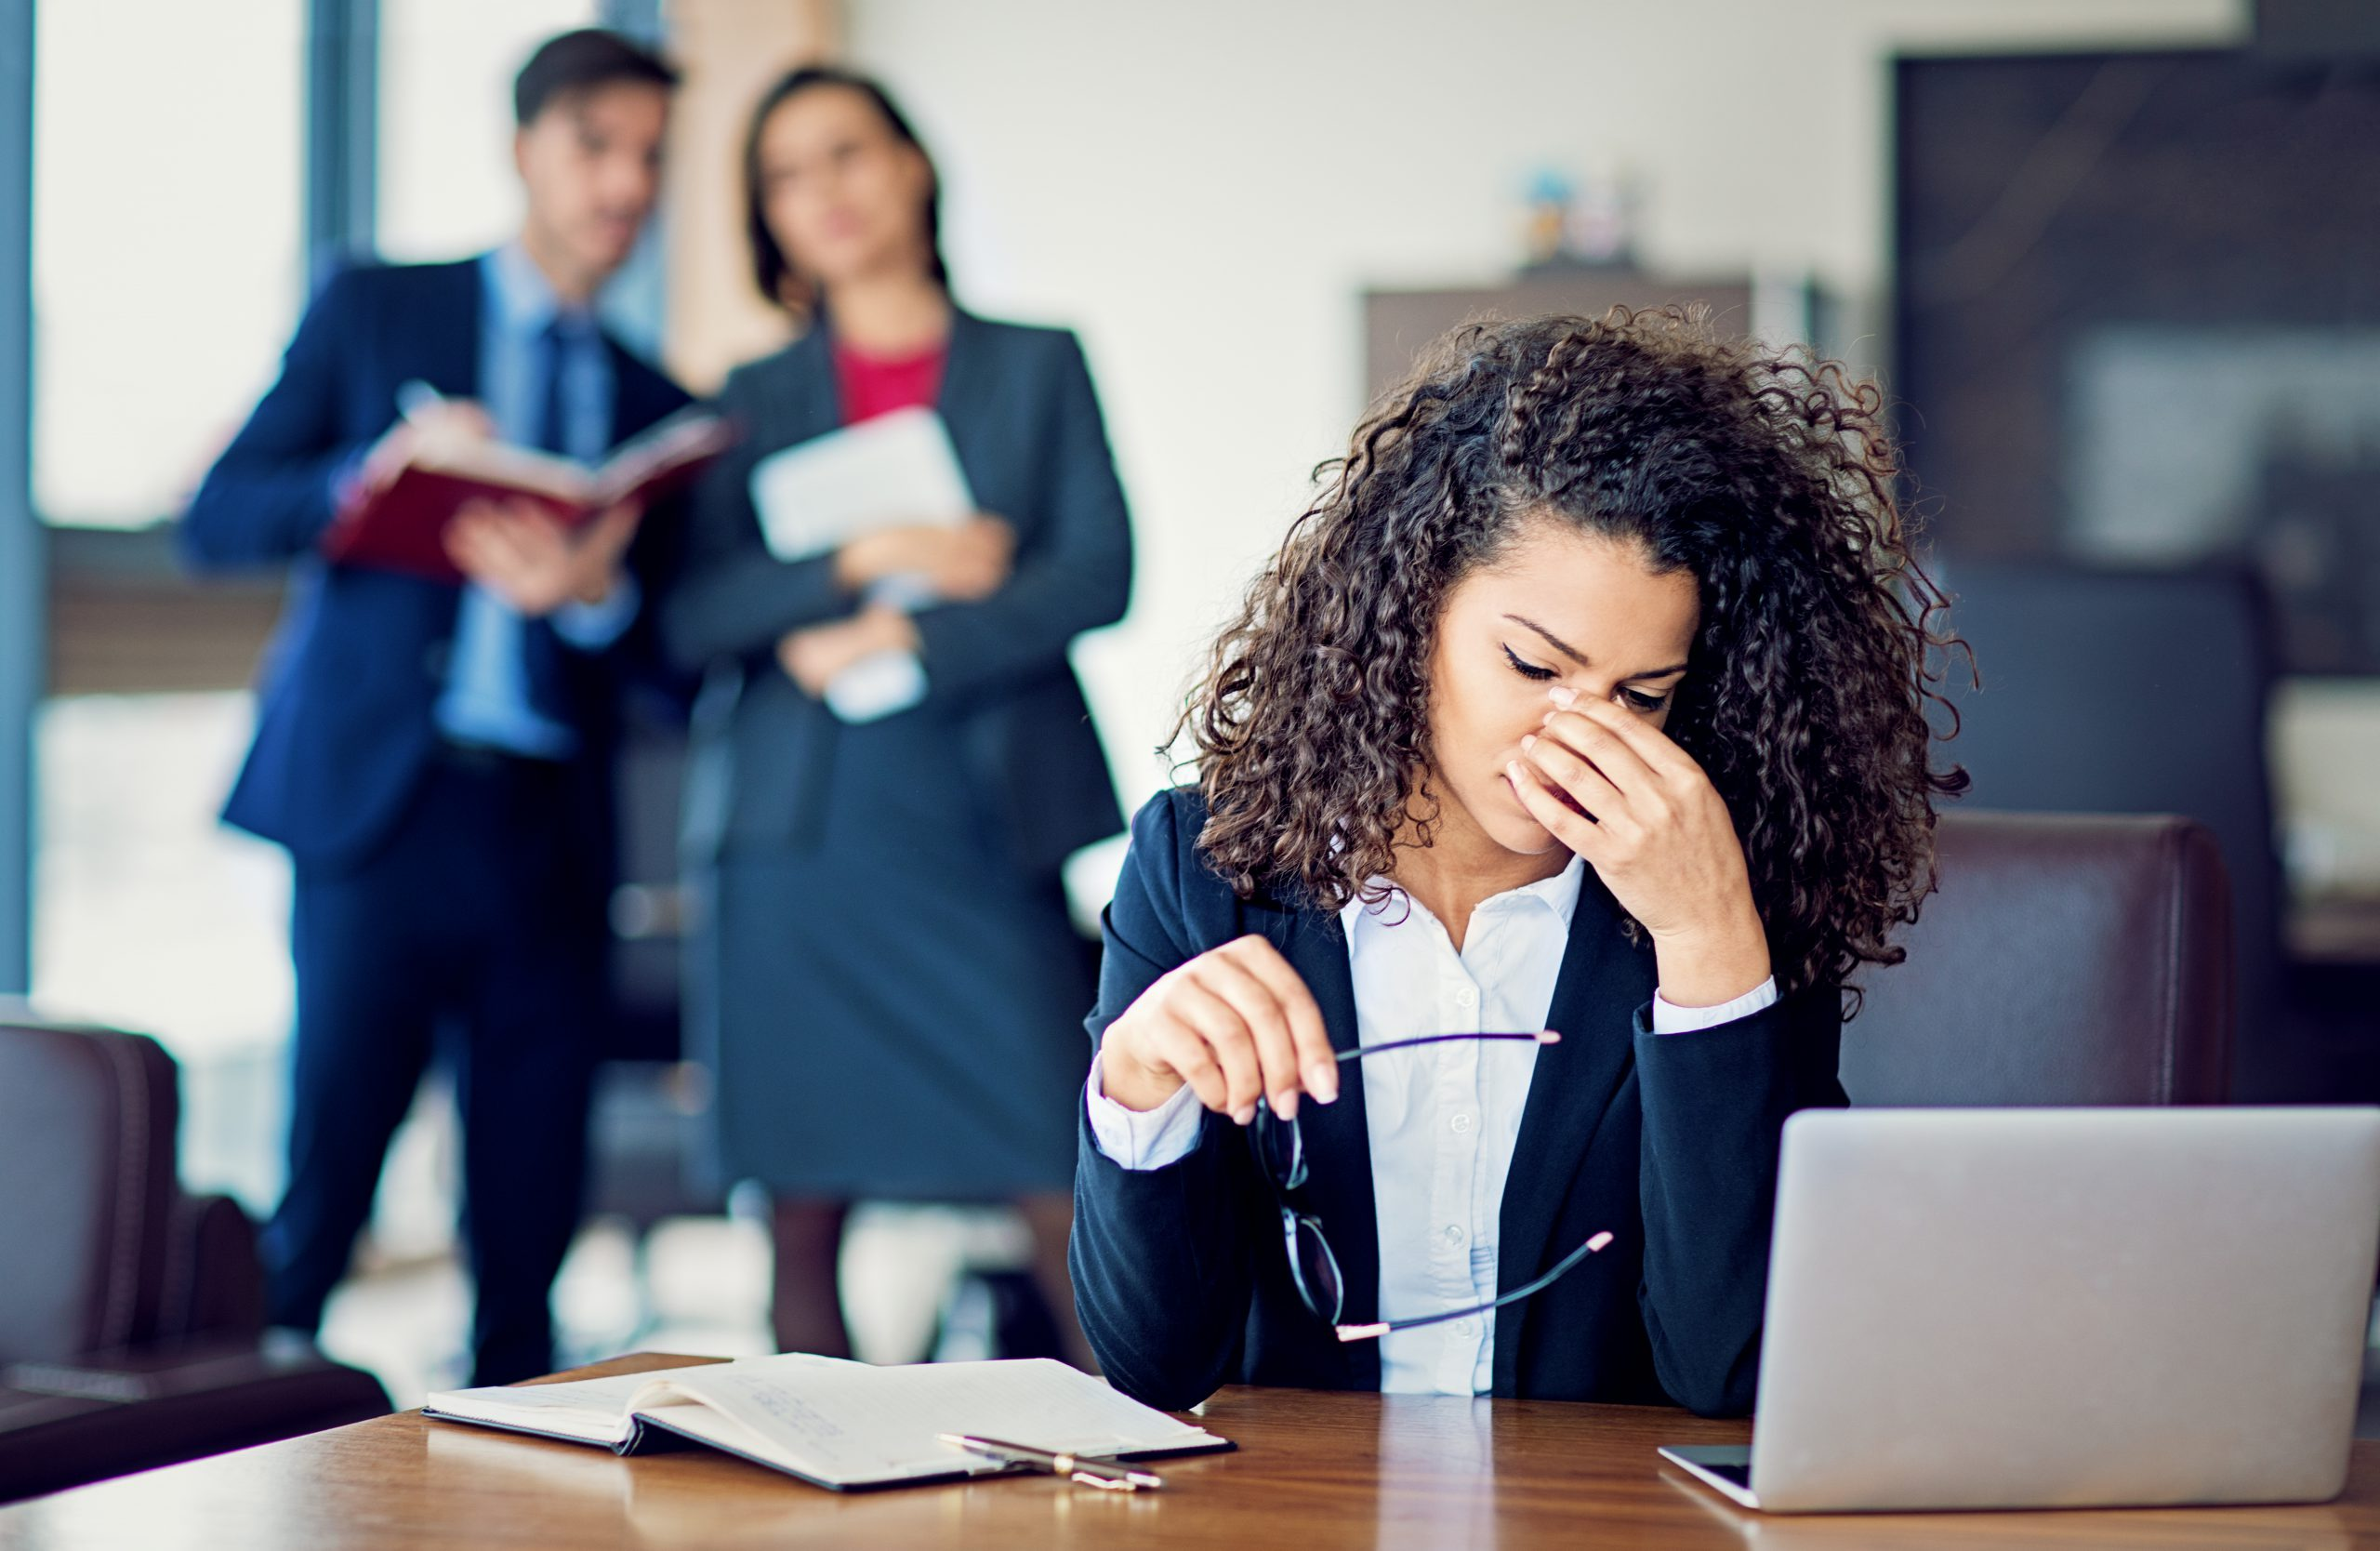 Workplace bullying claims in Australia are on the rise.